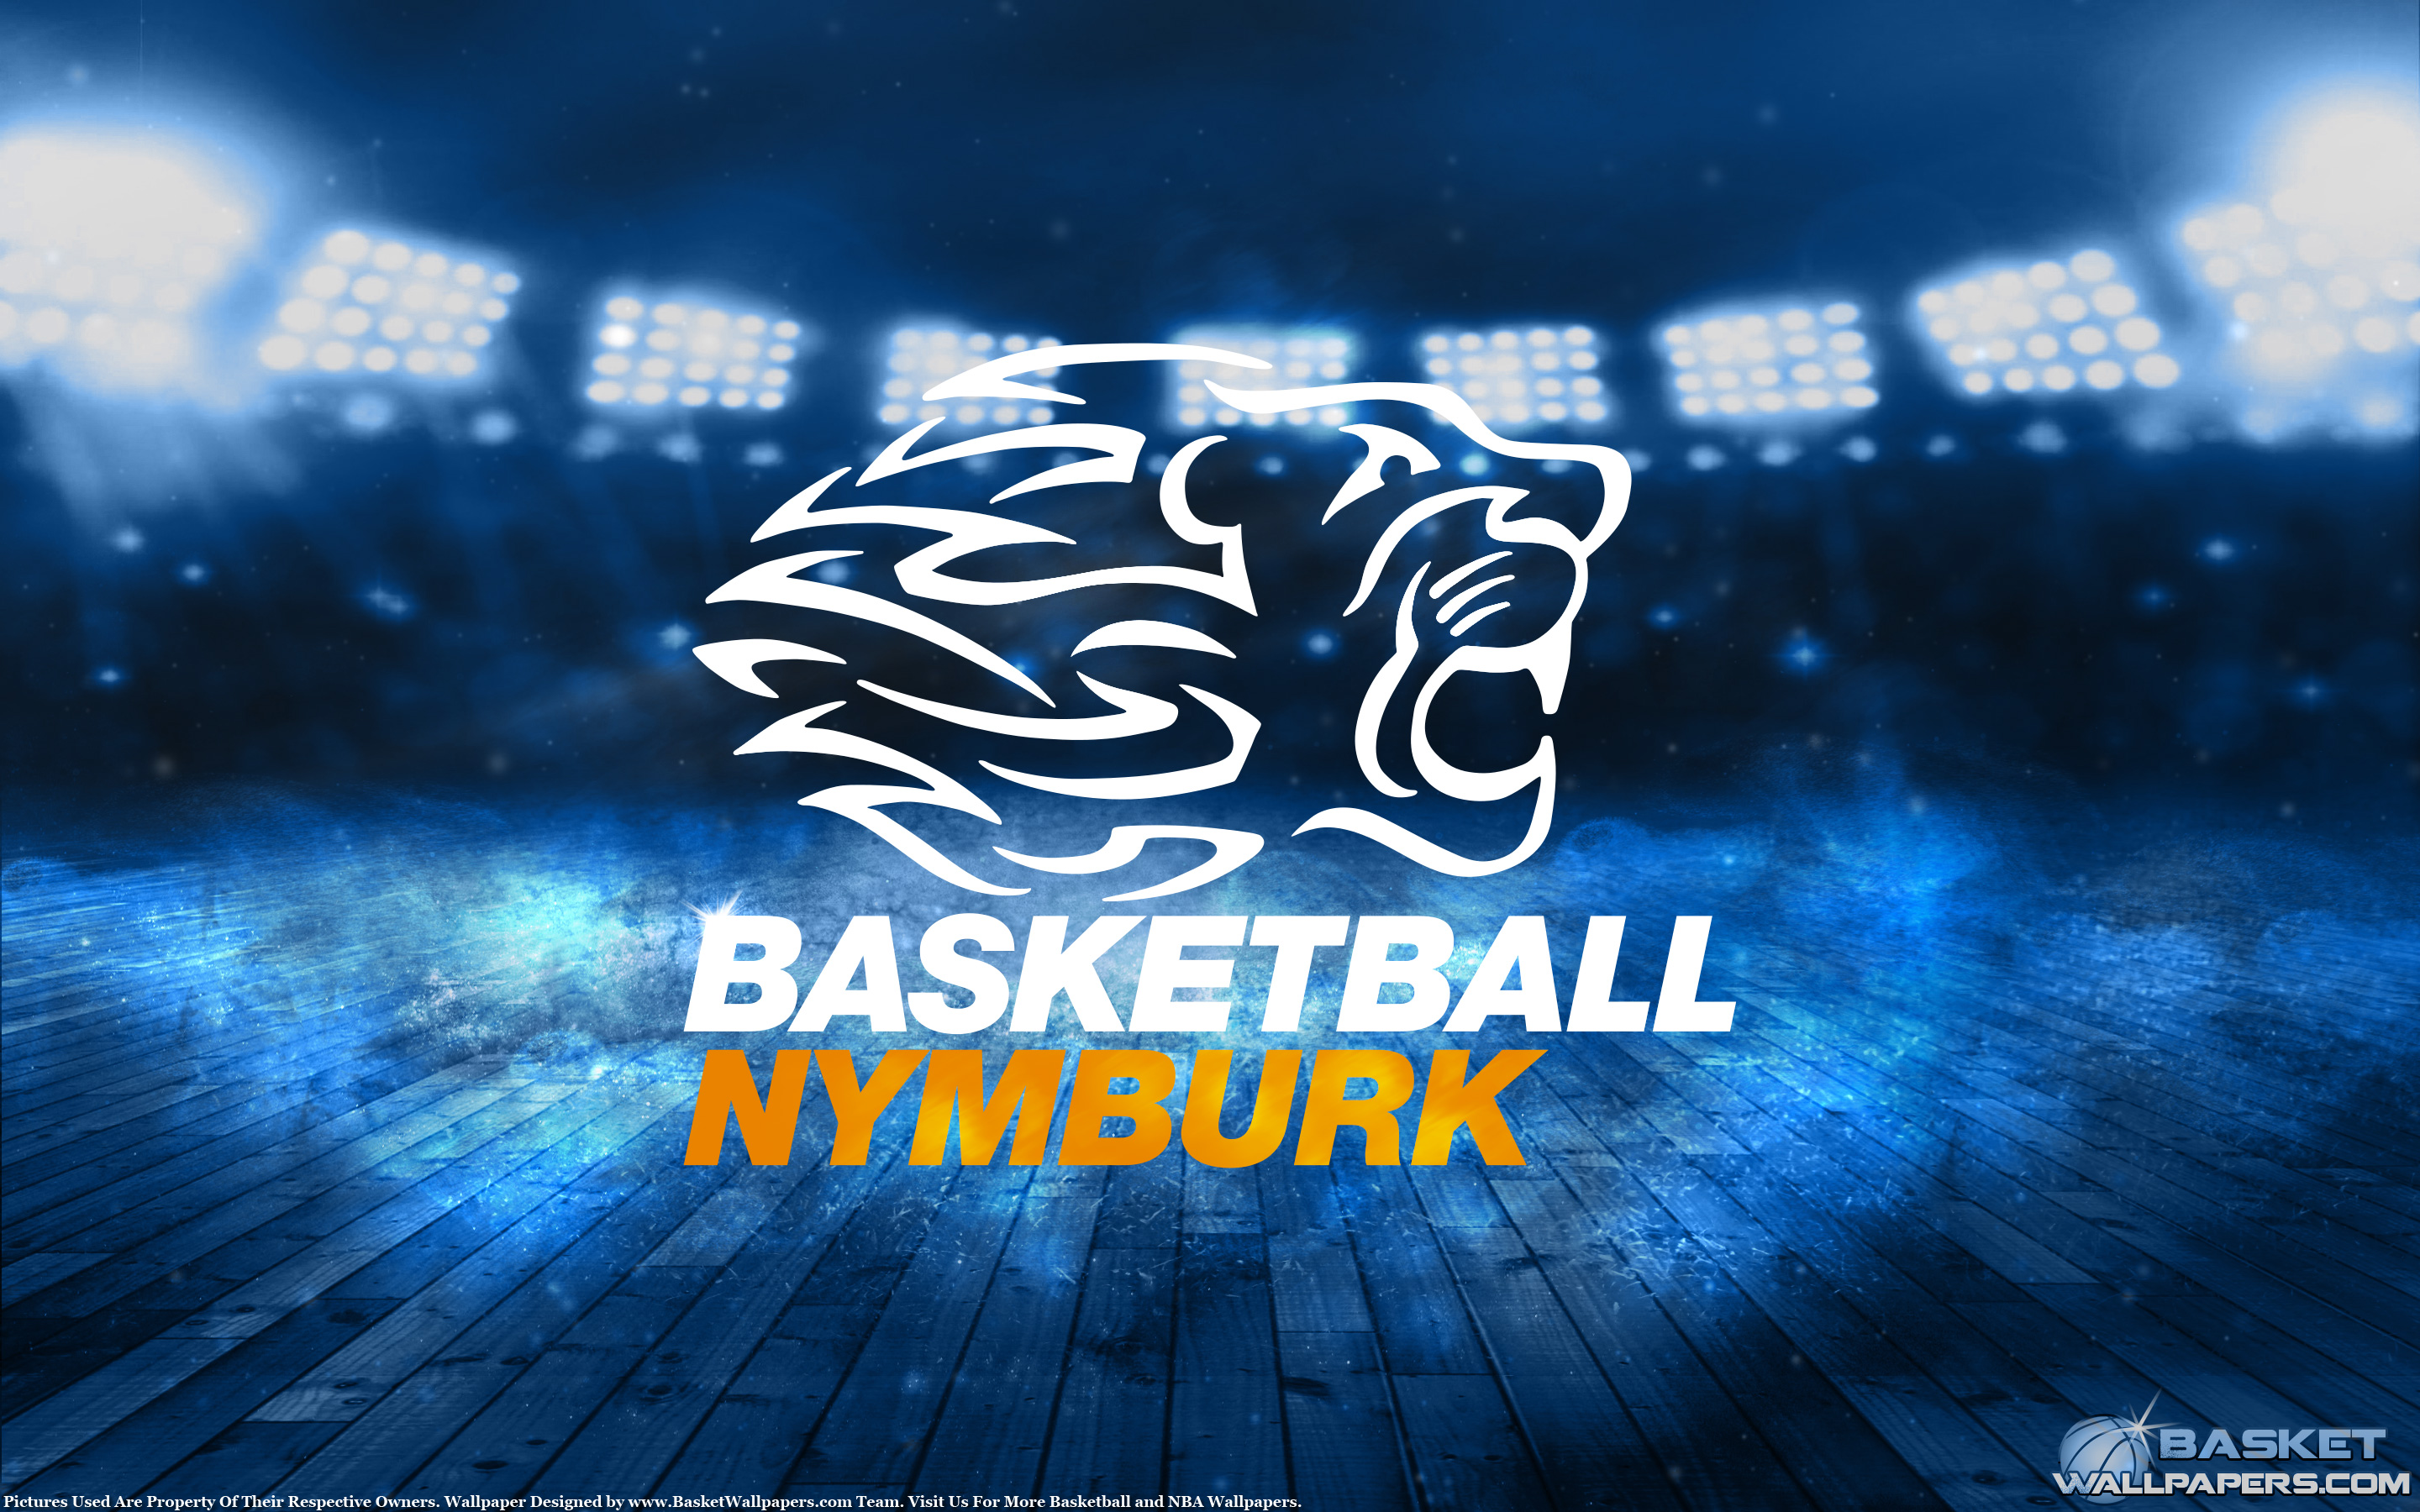 Basketball Nymburk 2015 Champions Wallpaper